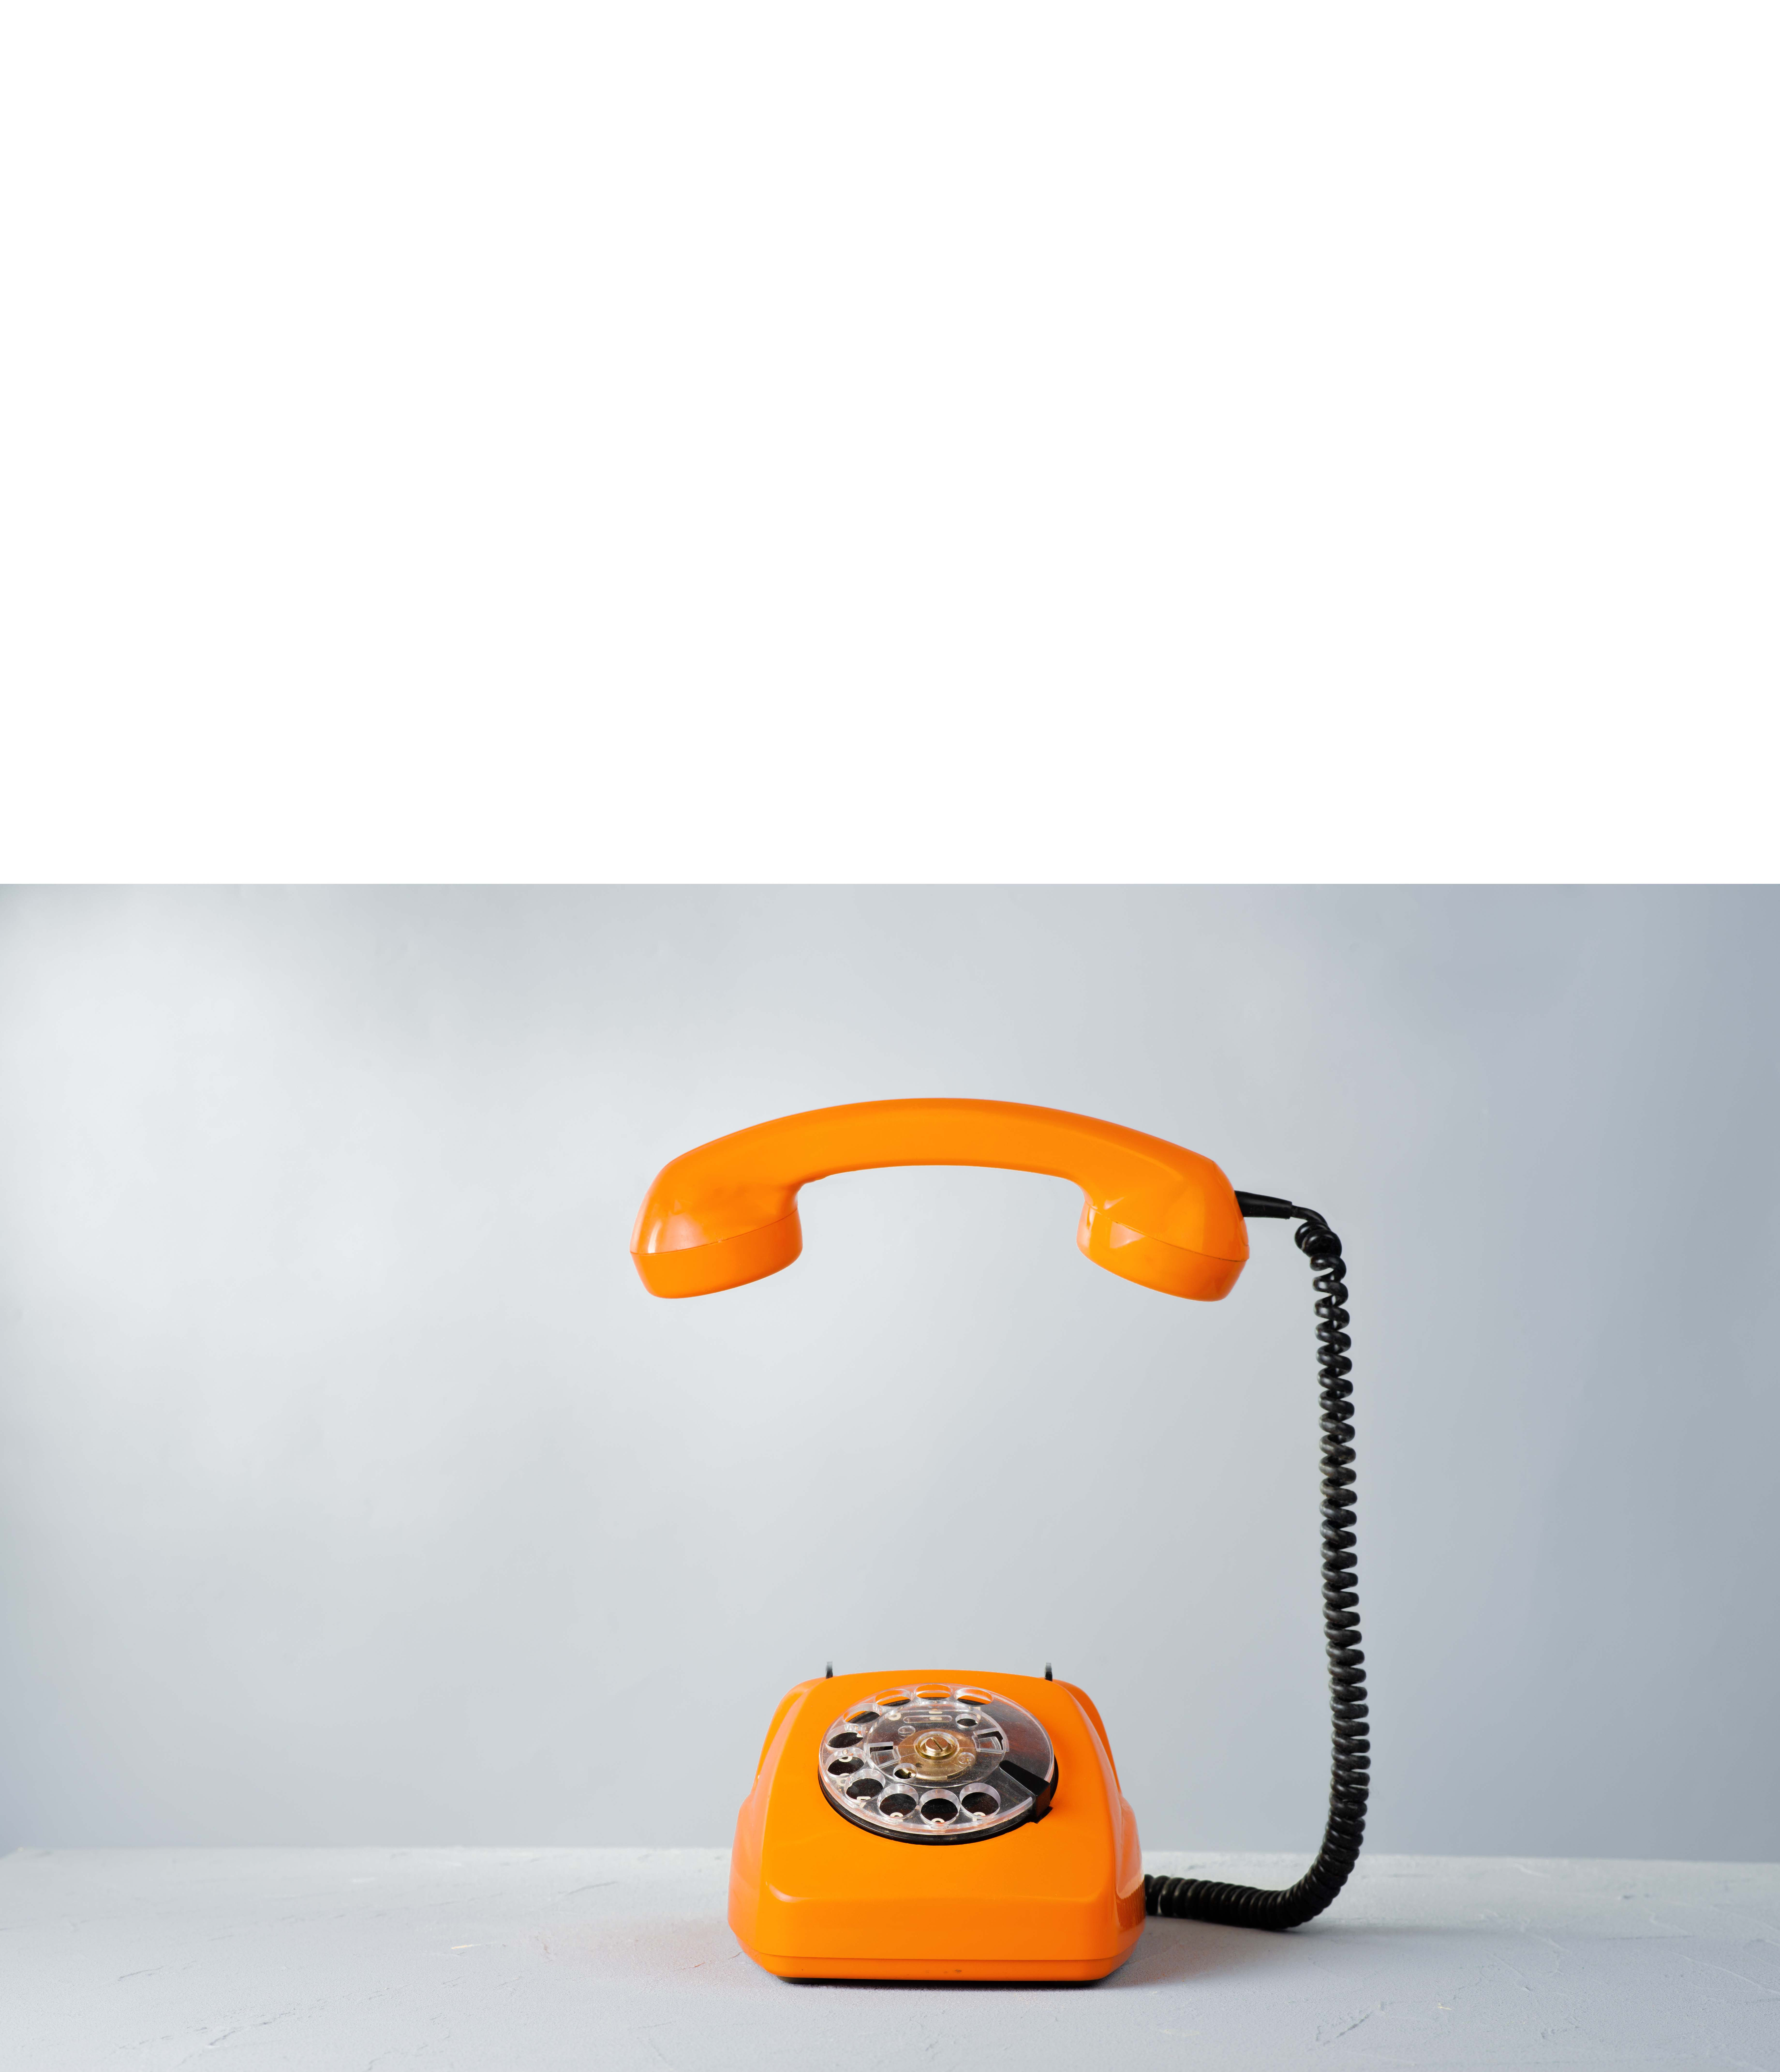 Moment of Truth: When the Phone Rings